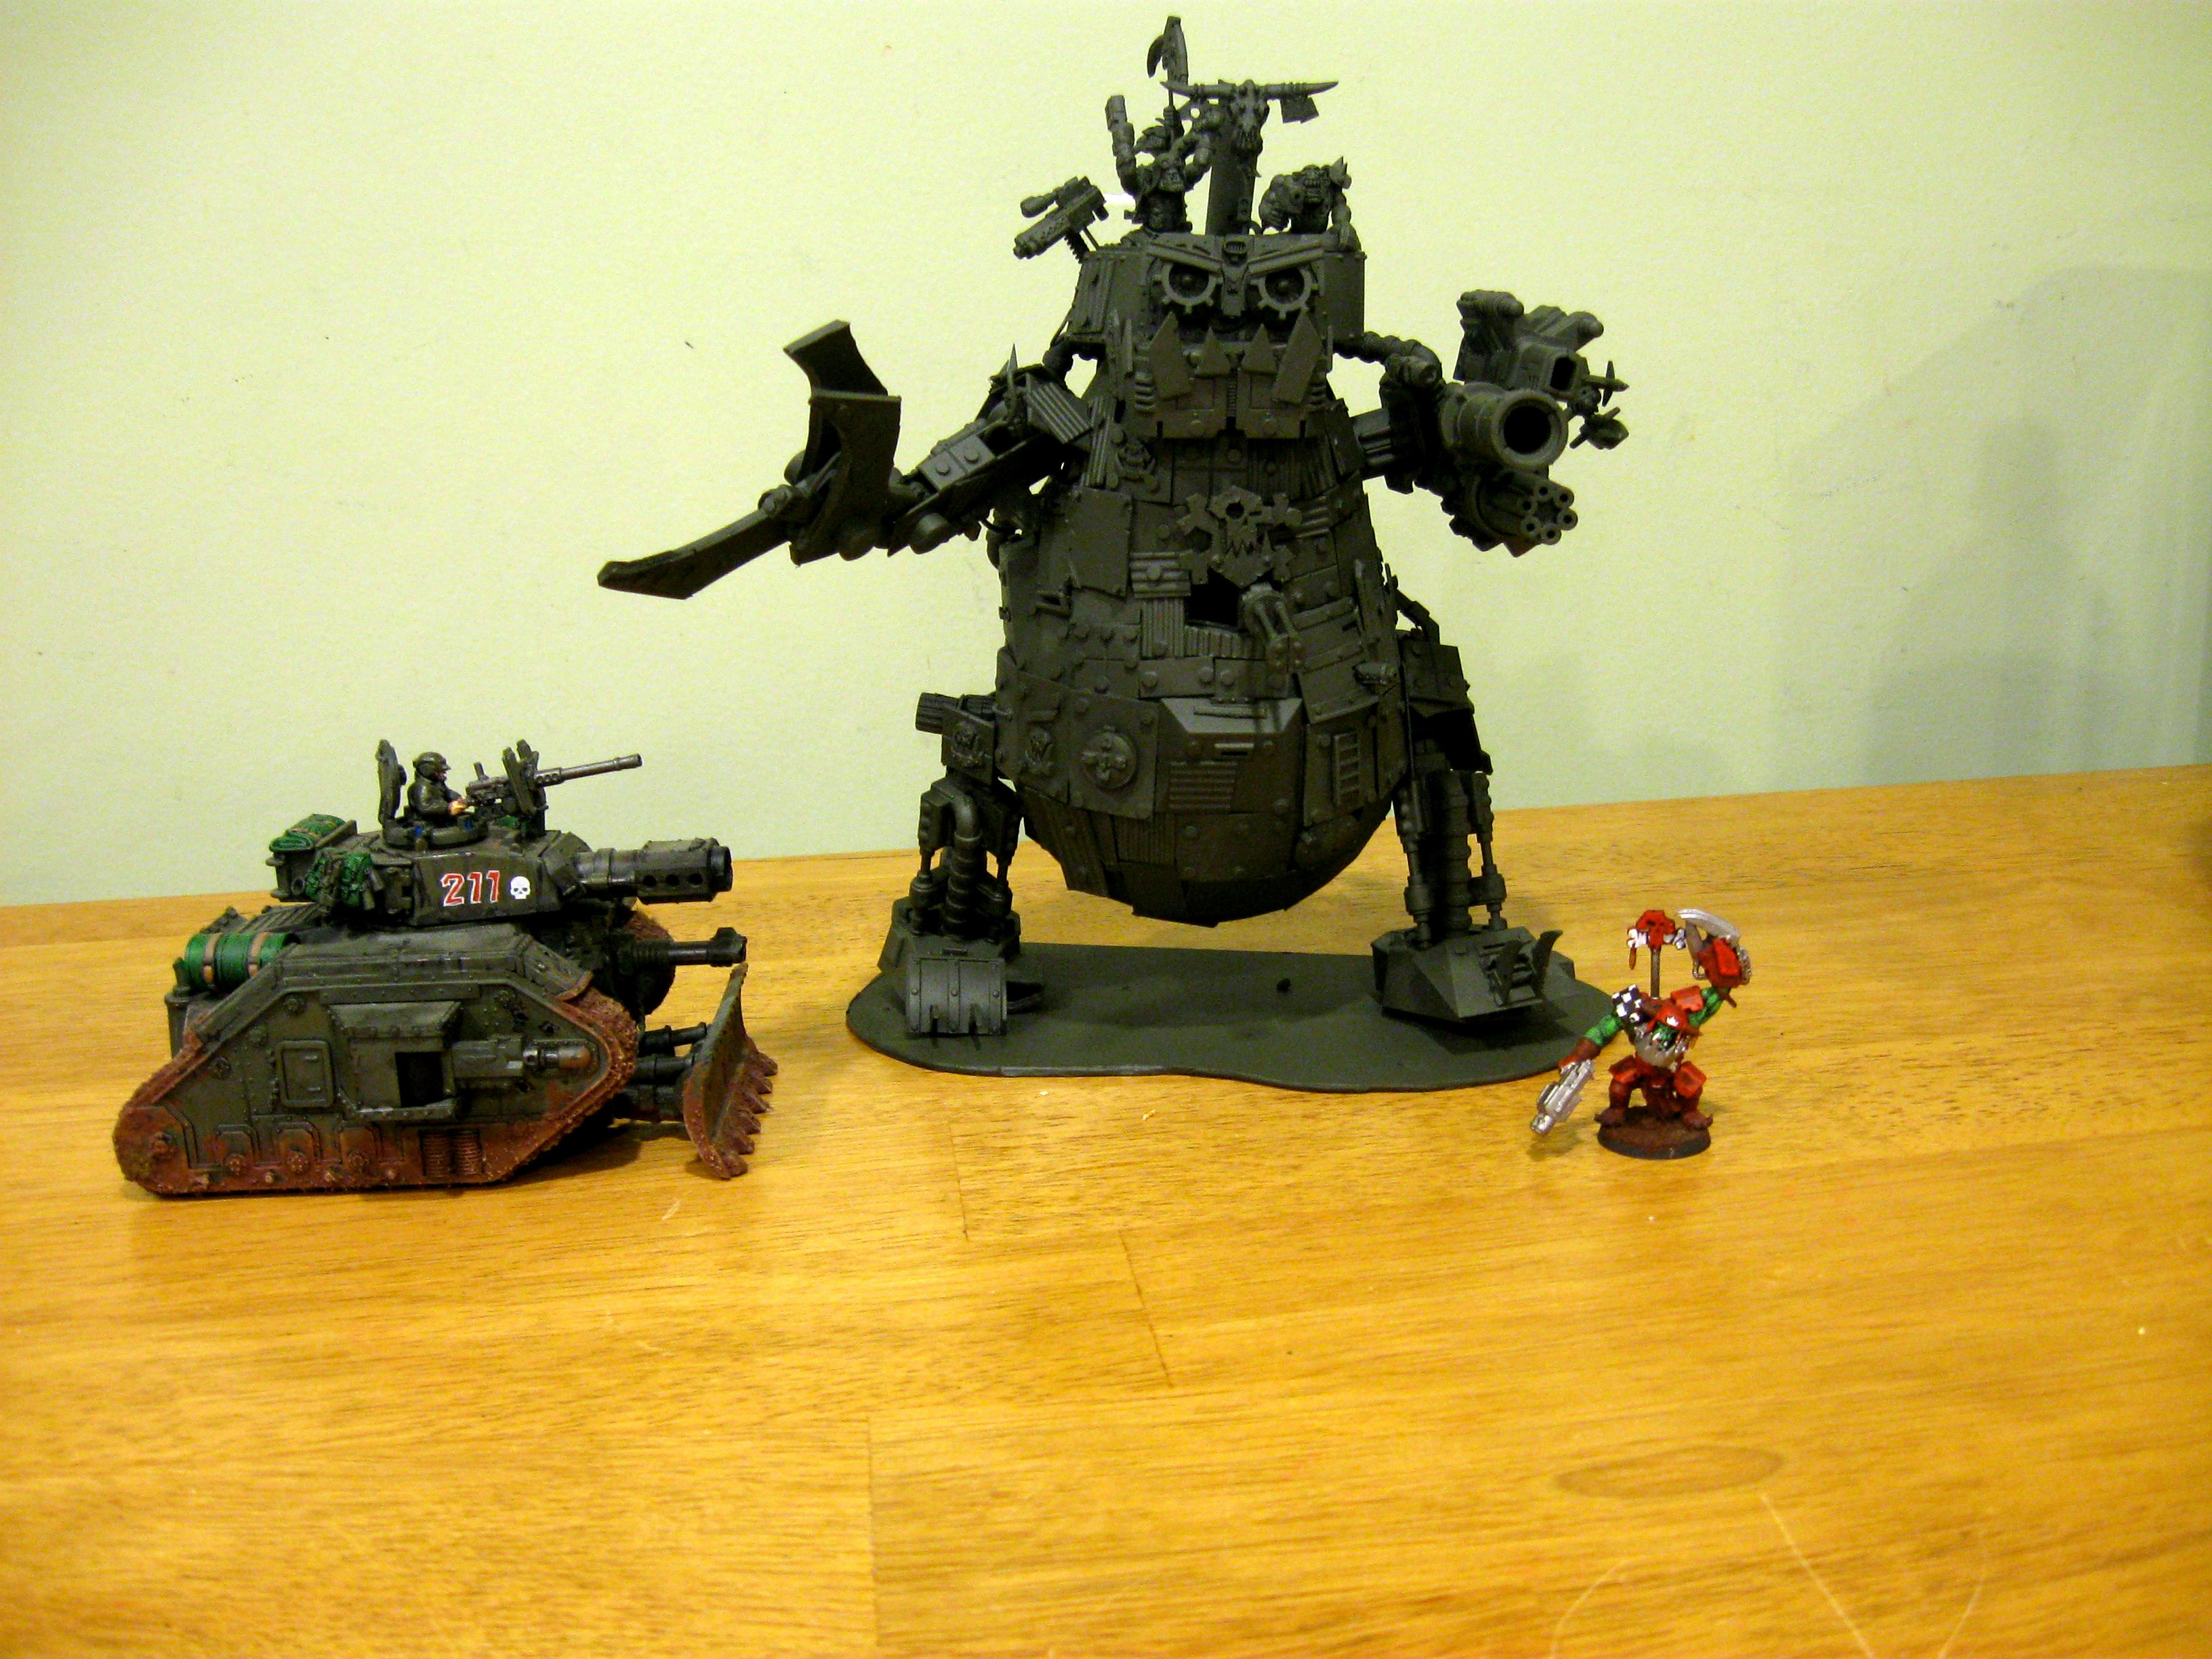 Orks, Stompa, Warhammer 40,000